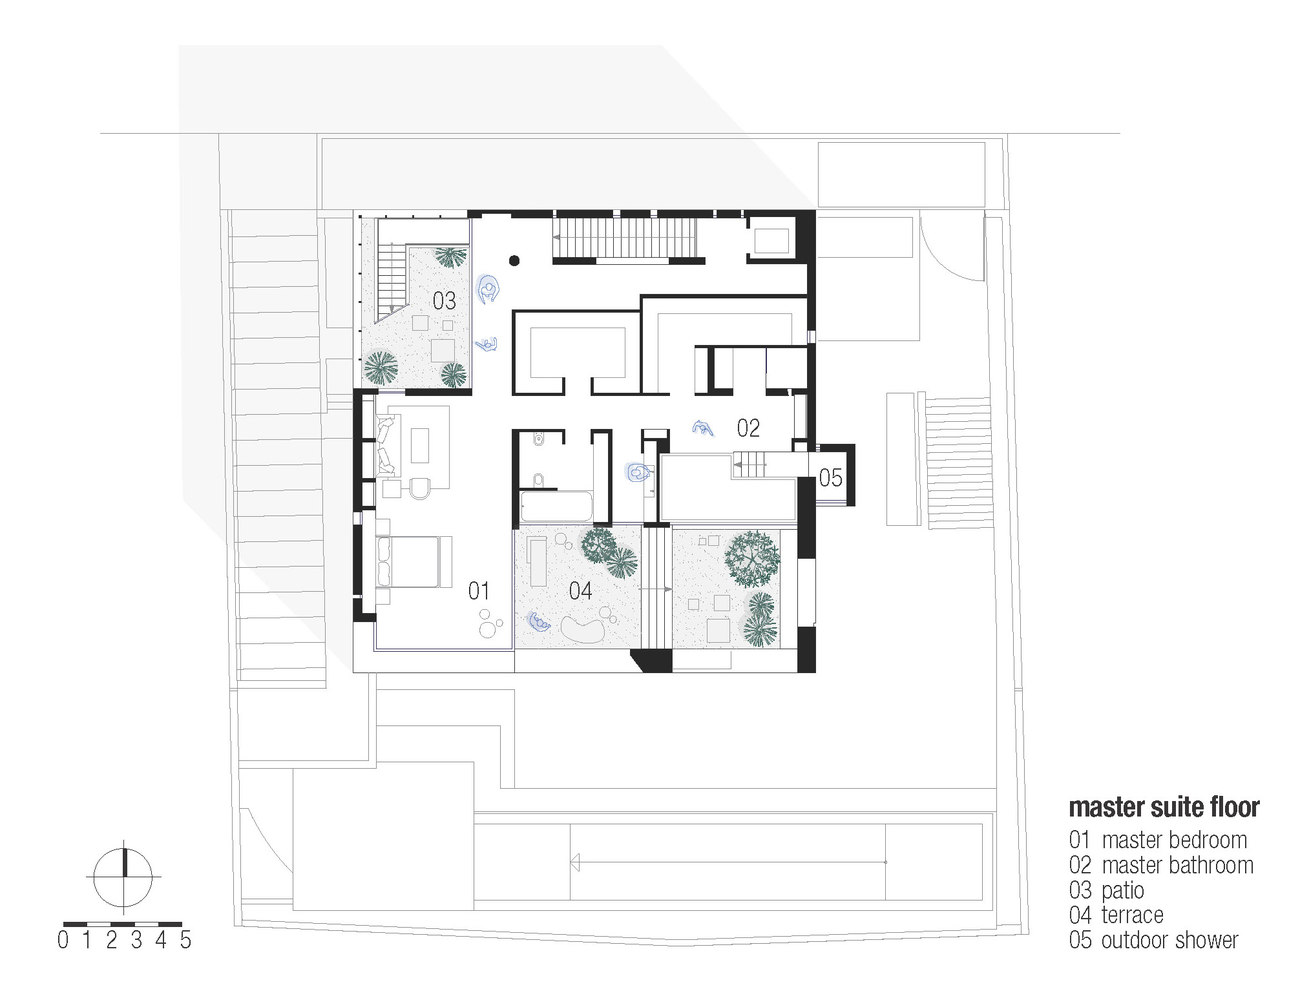 Fullsize Of Master Bedroom Floor Plans